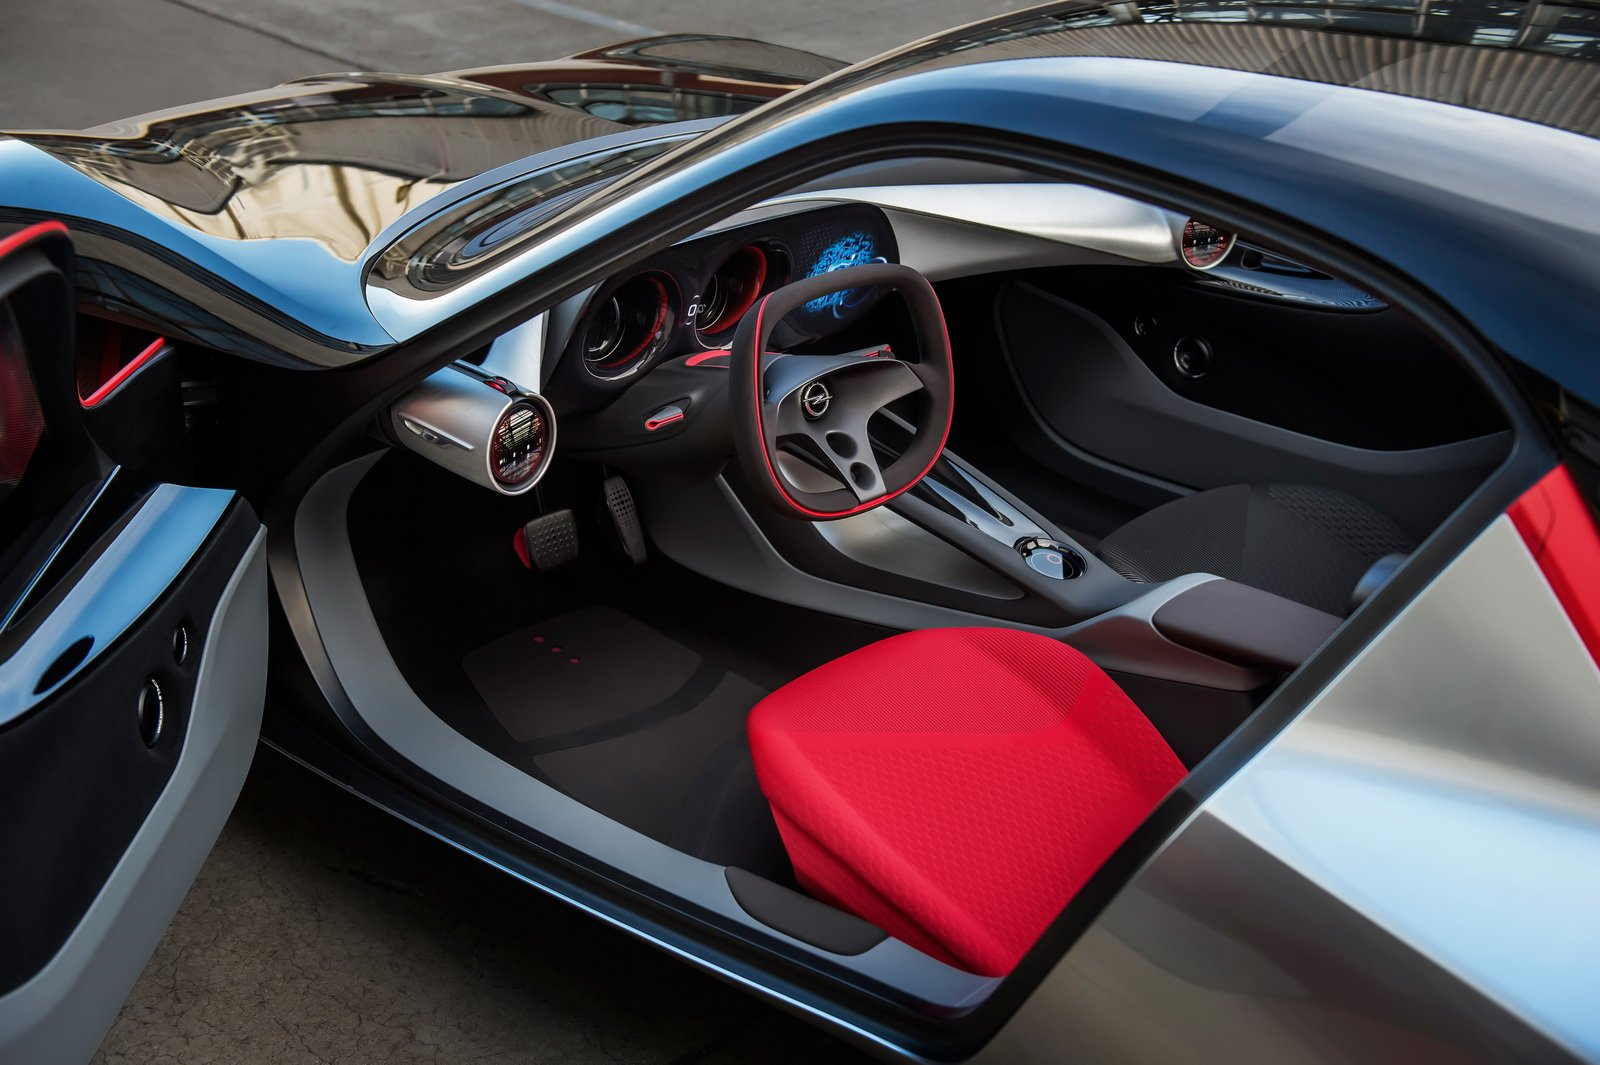 Opel GT concept interior revealed - photos | CarAdvice